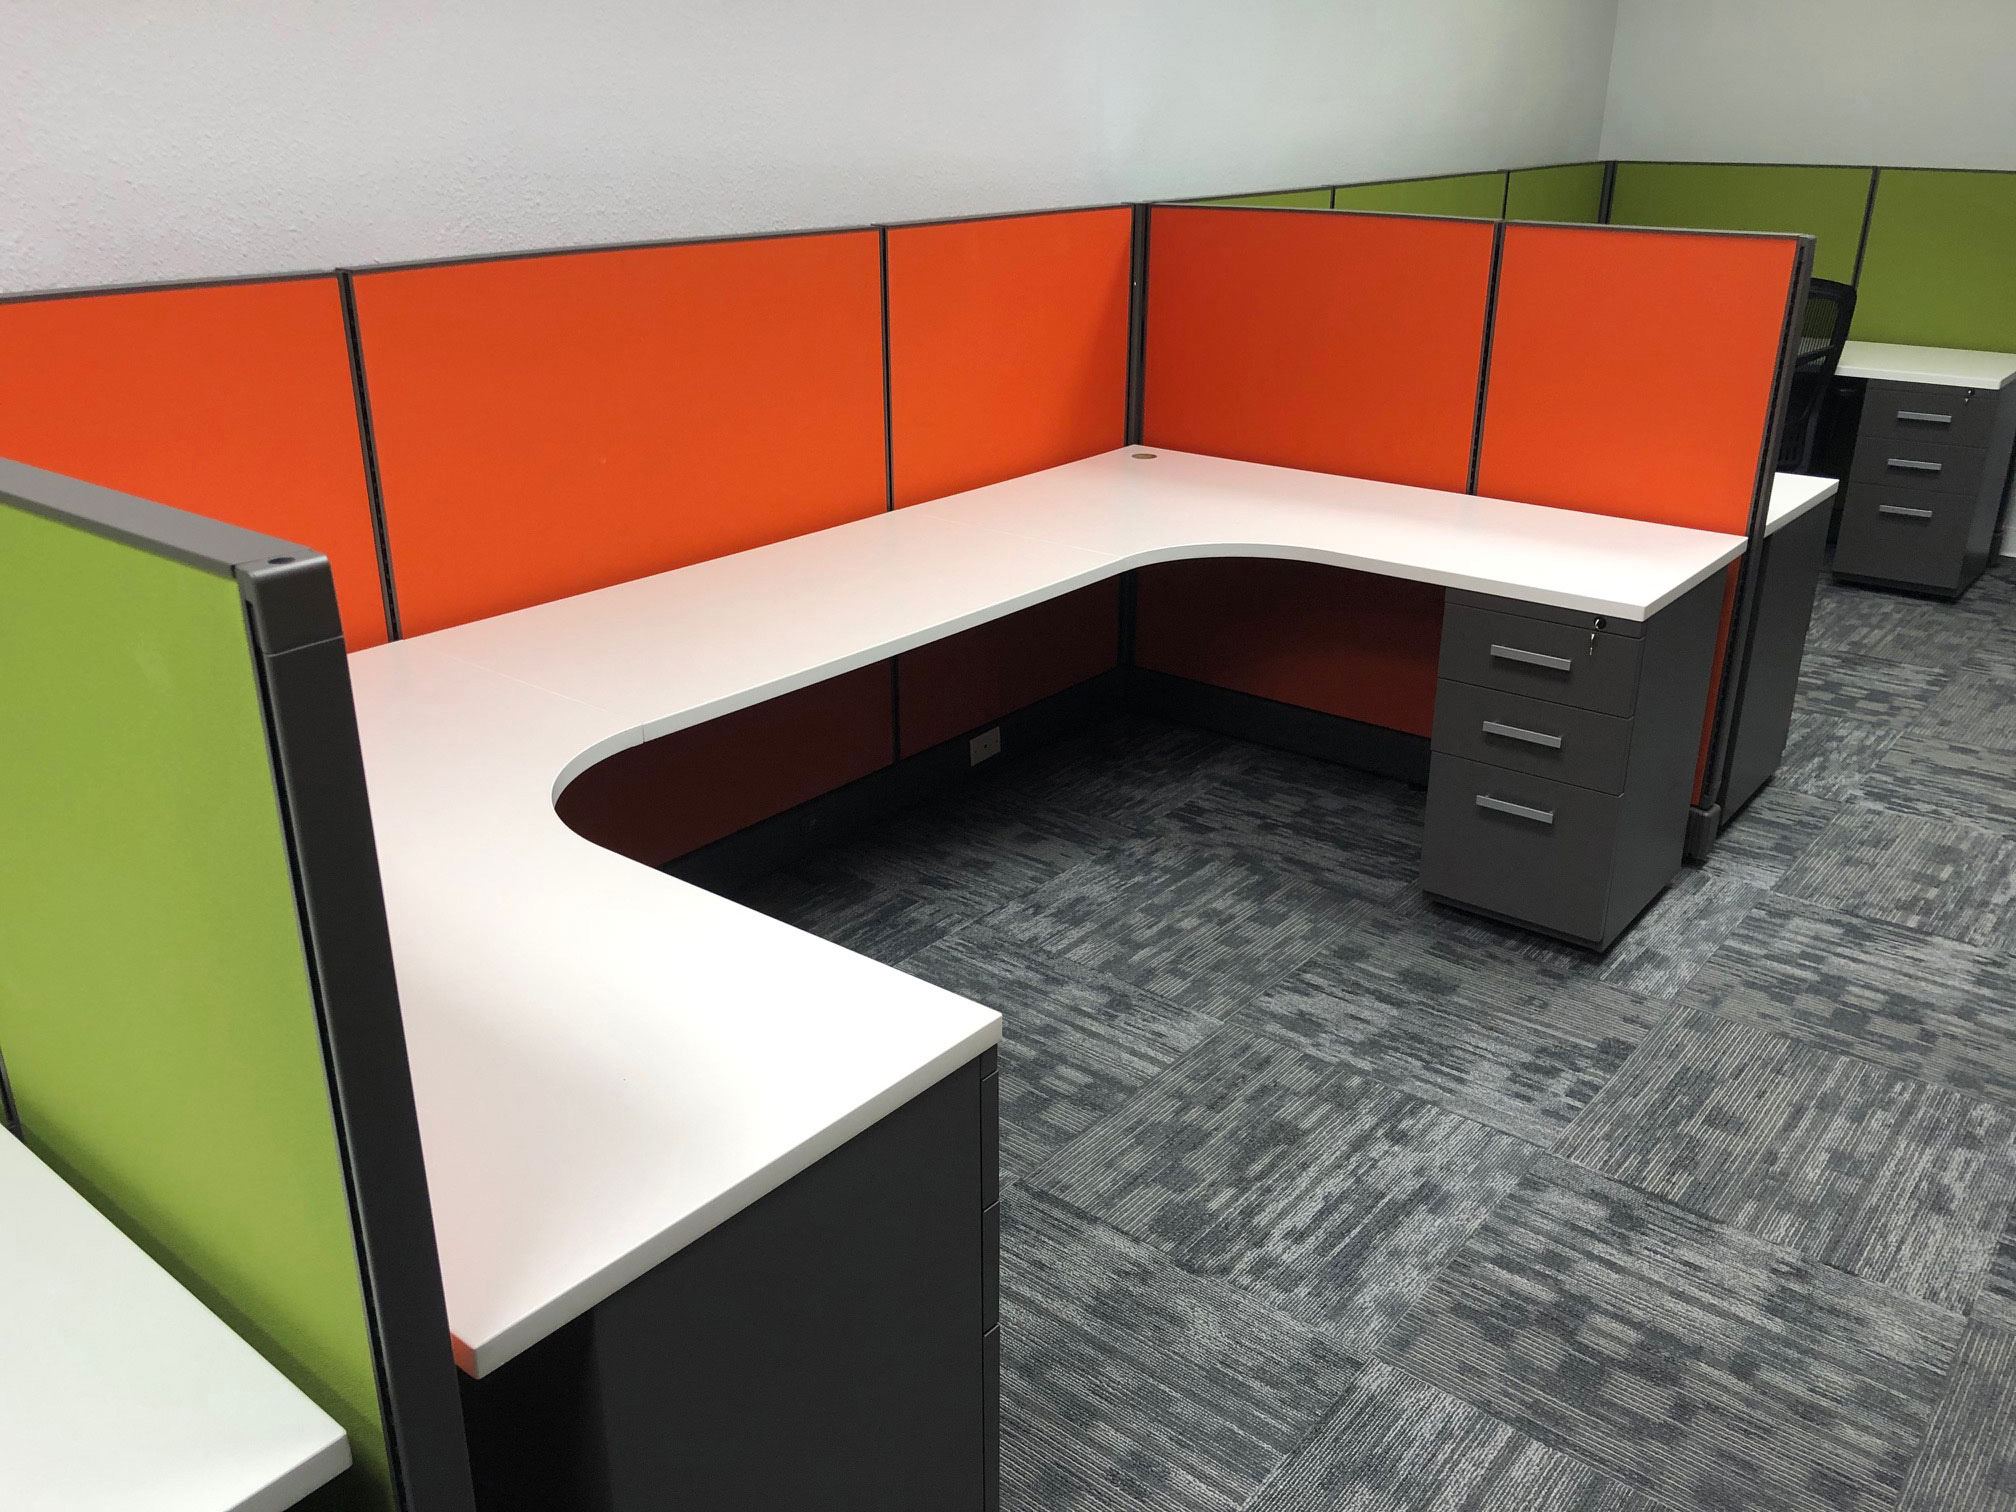 office-cubicles-for-sale-in-longwood-florida-2.jpg